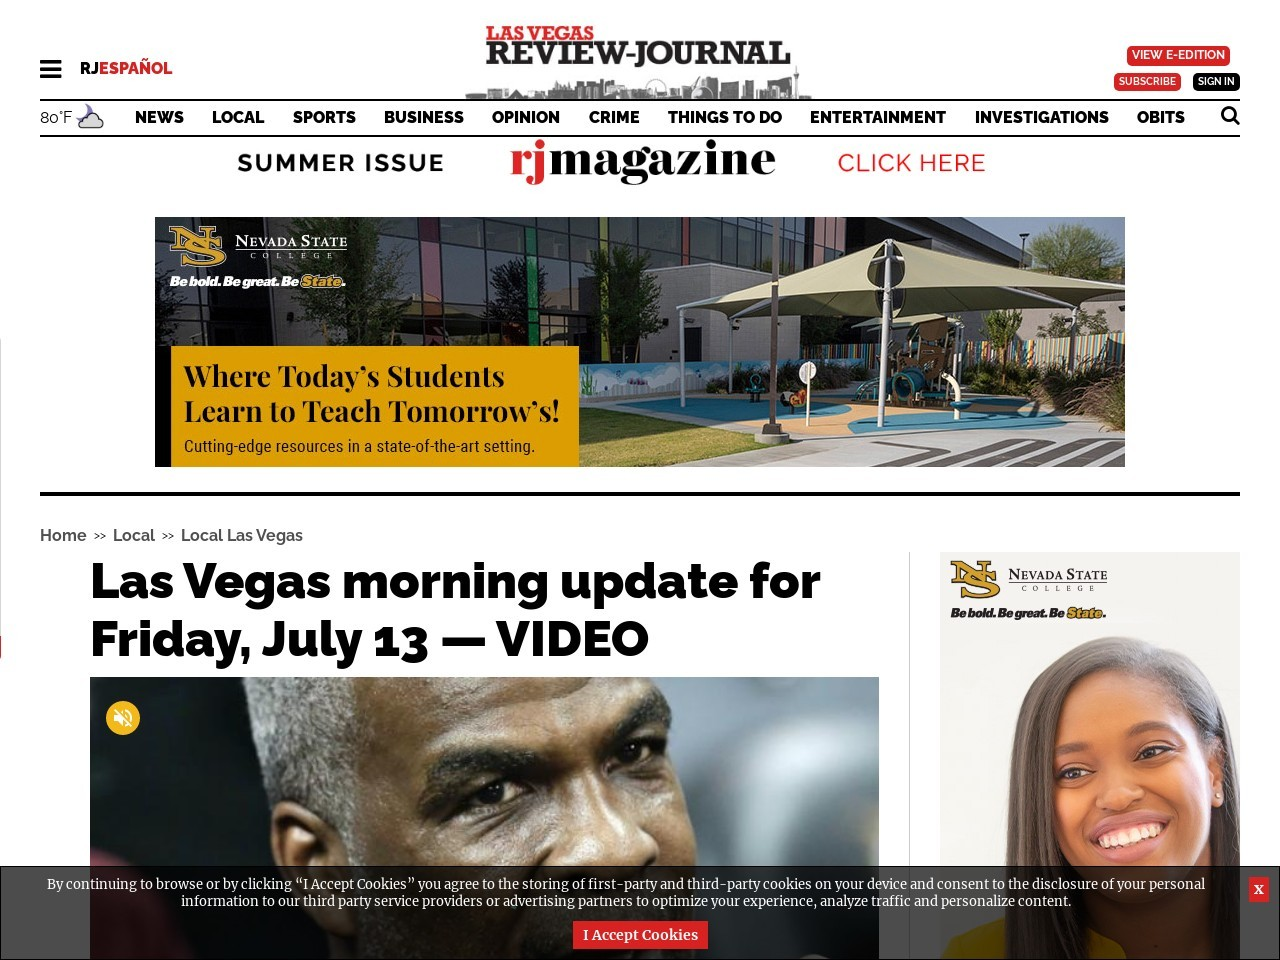 Las Vegas morning update for Friday, July 13 — VIDEO